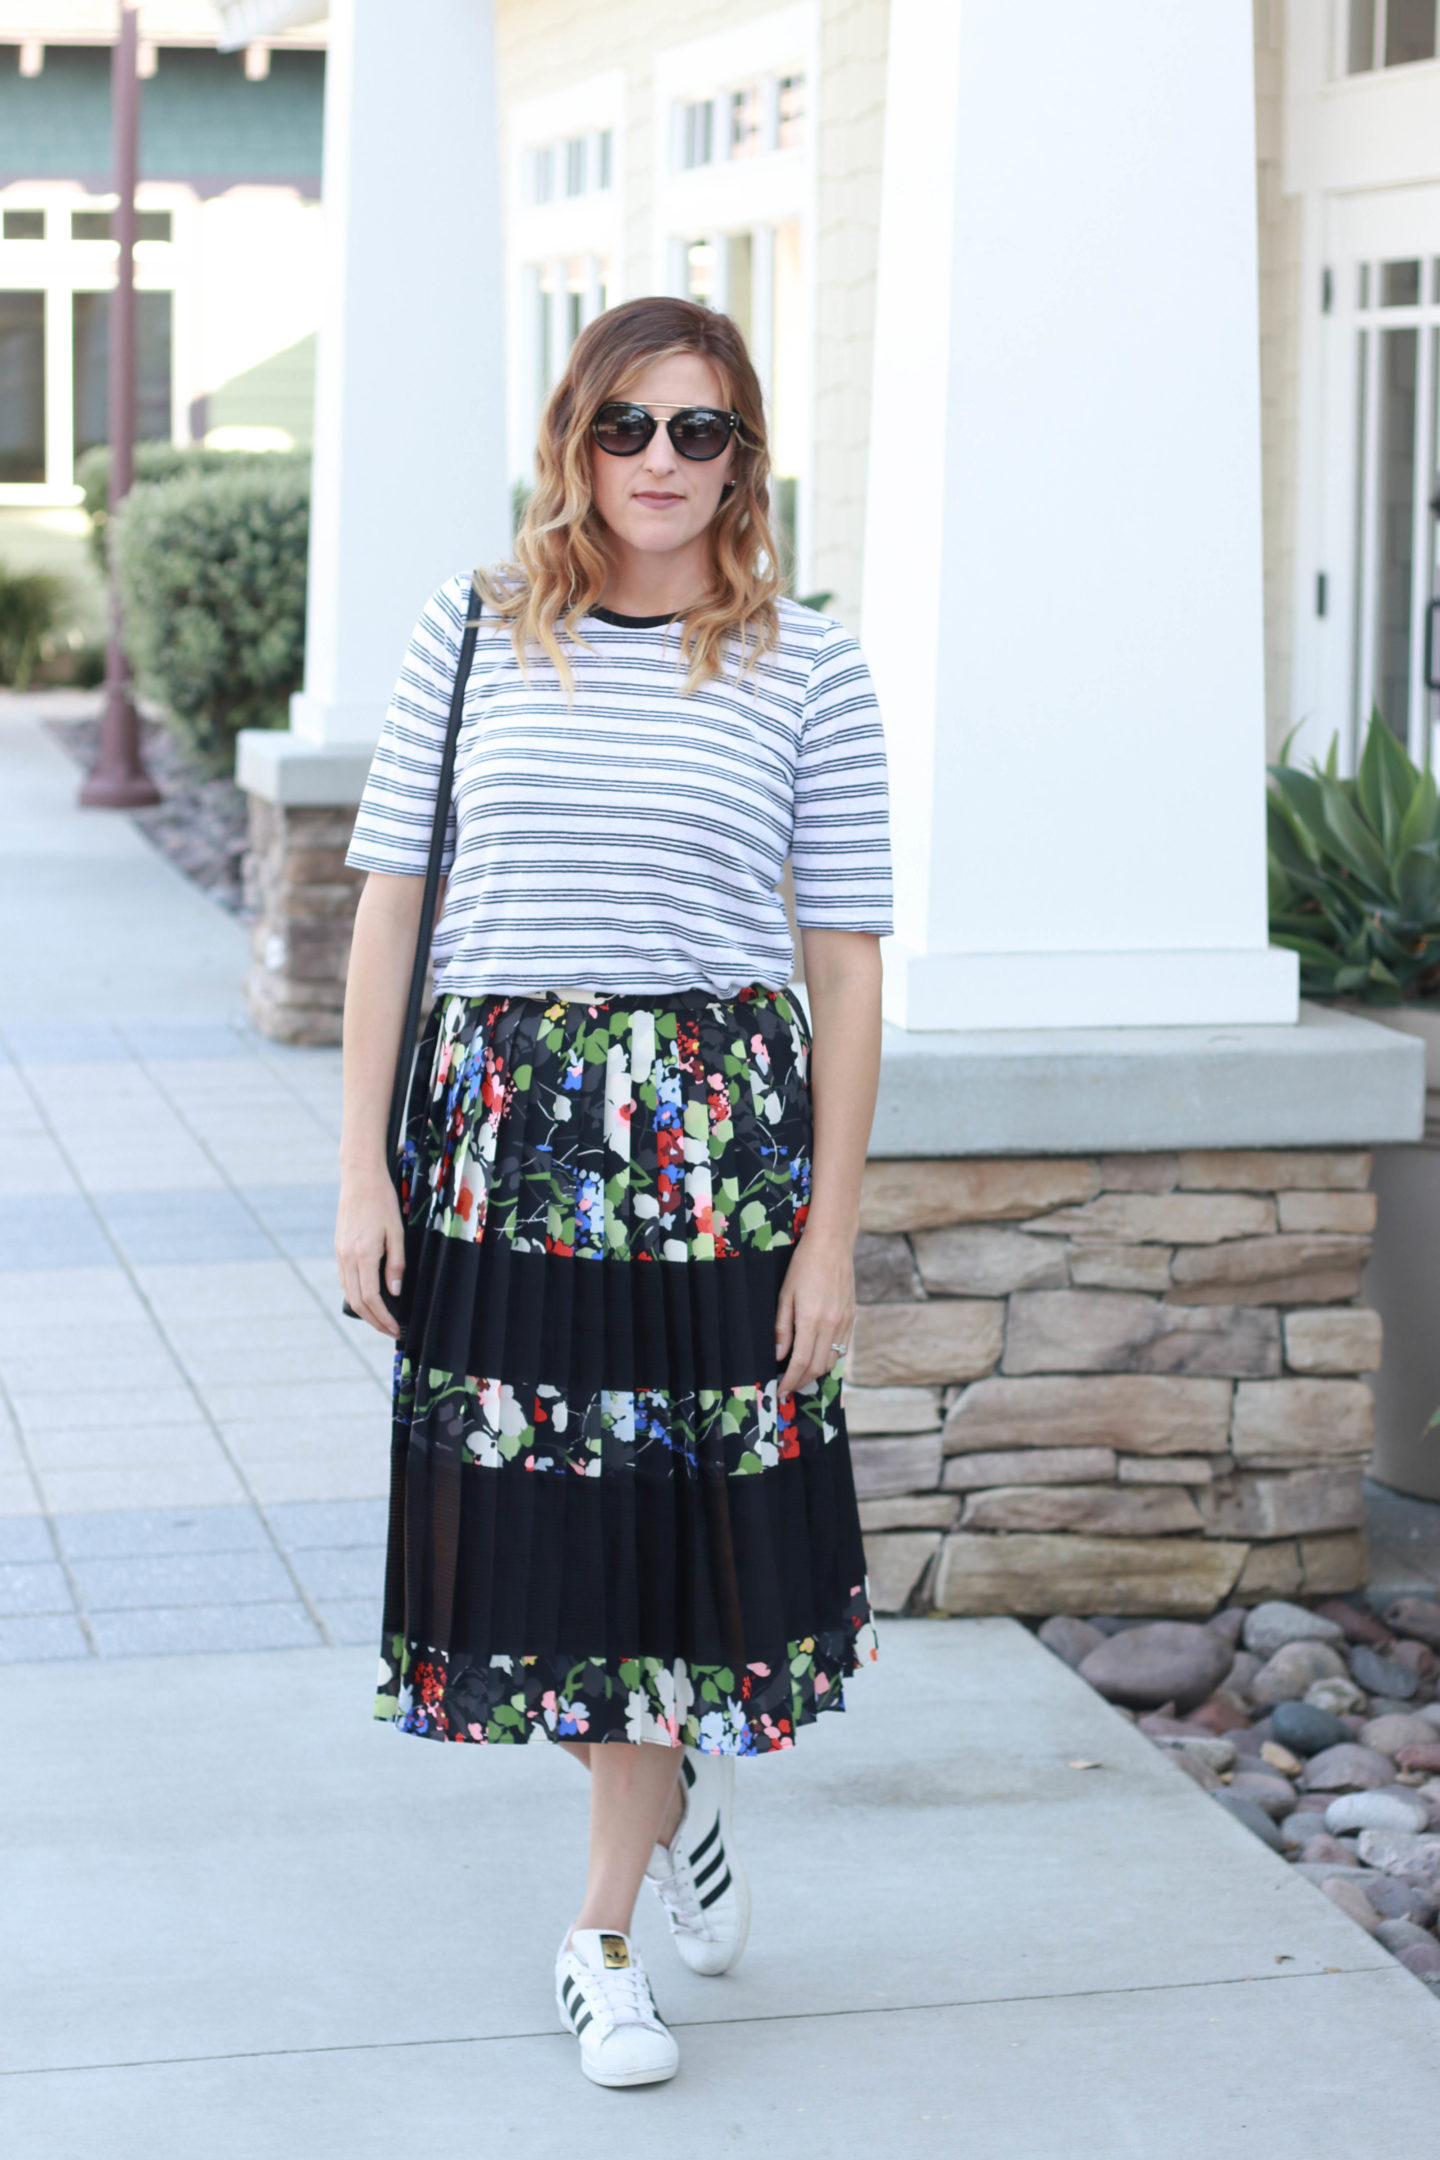 A floral skirt with a striped top and sneakers. A casual spring look.